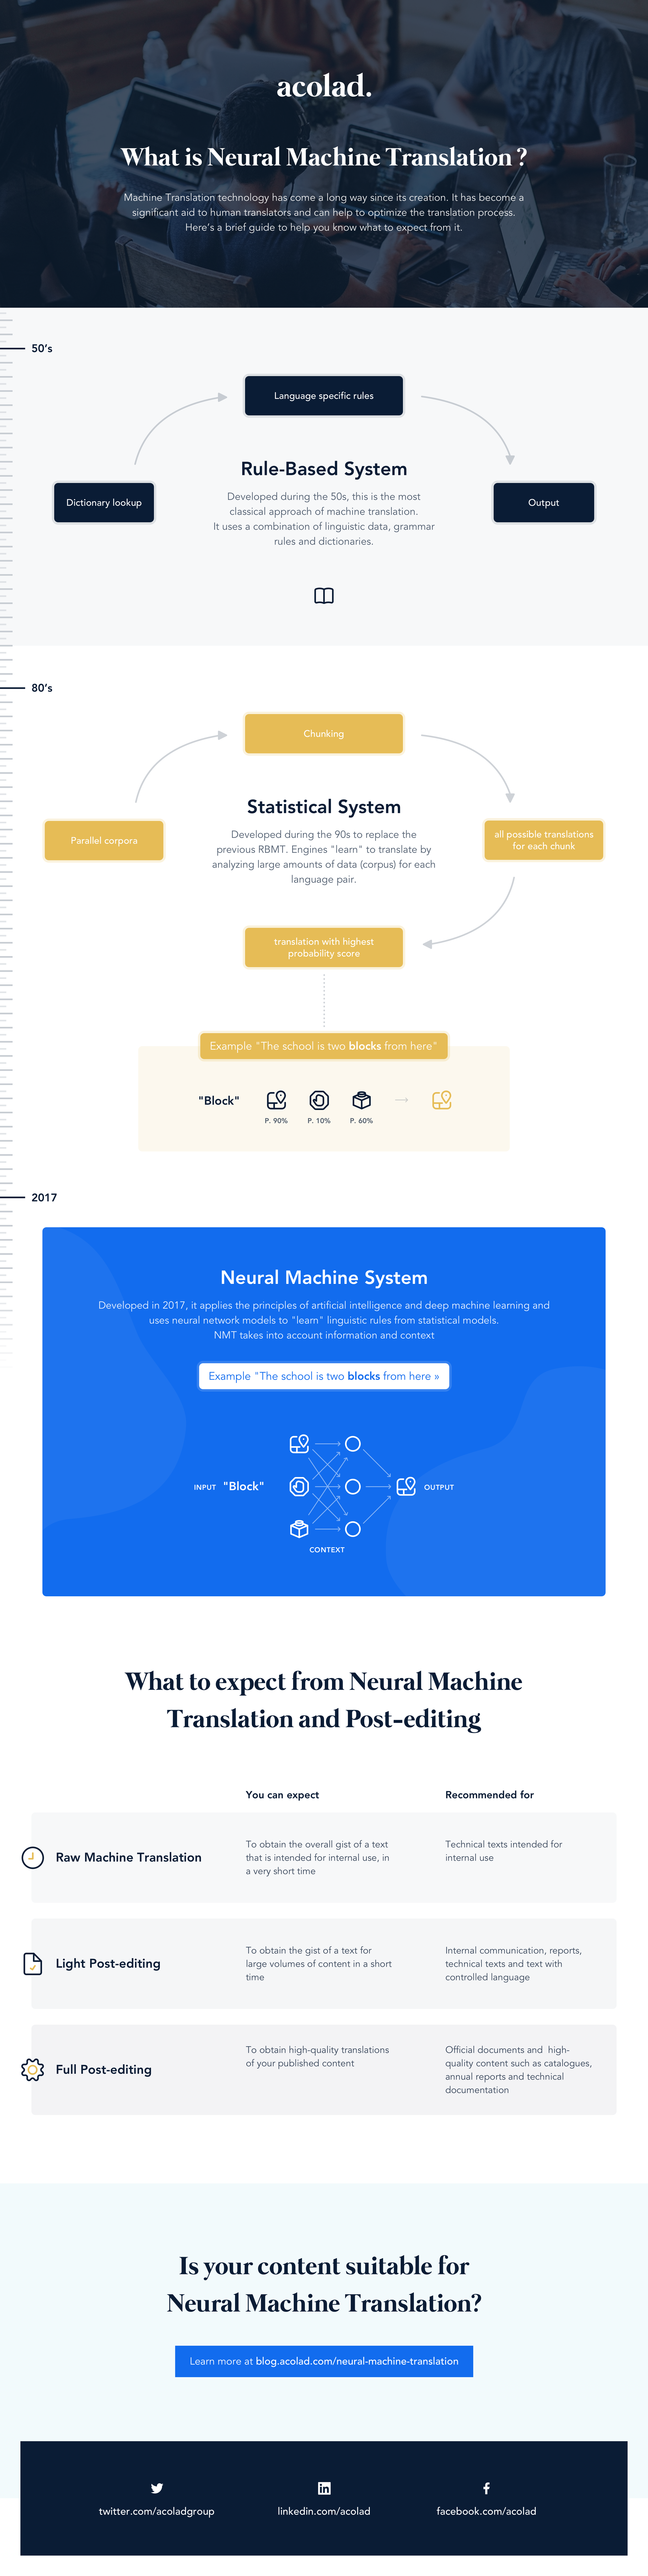 NMT-infographic